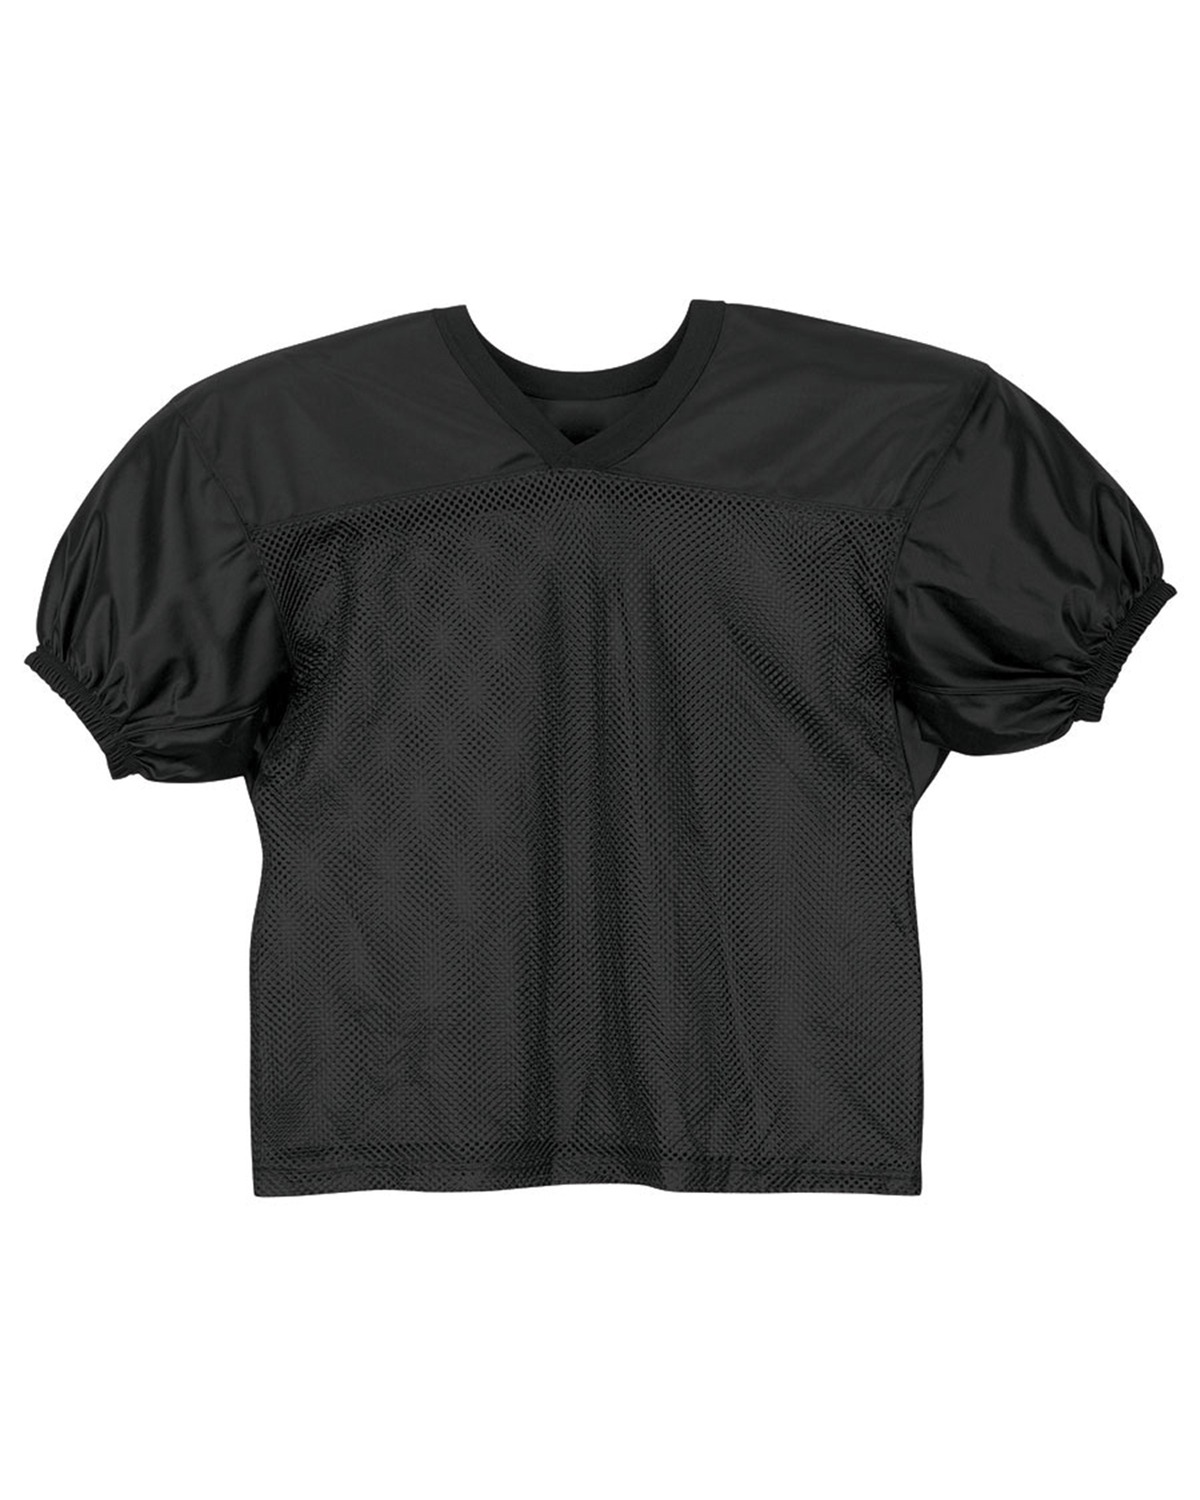 A4 Drop Ship - NB4136 Youth Football Game Jersey